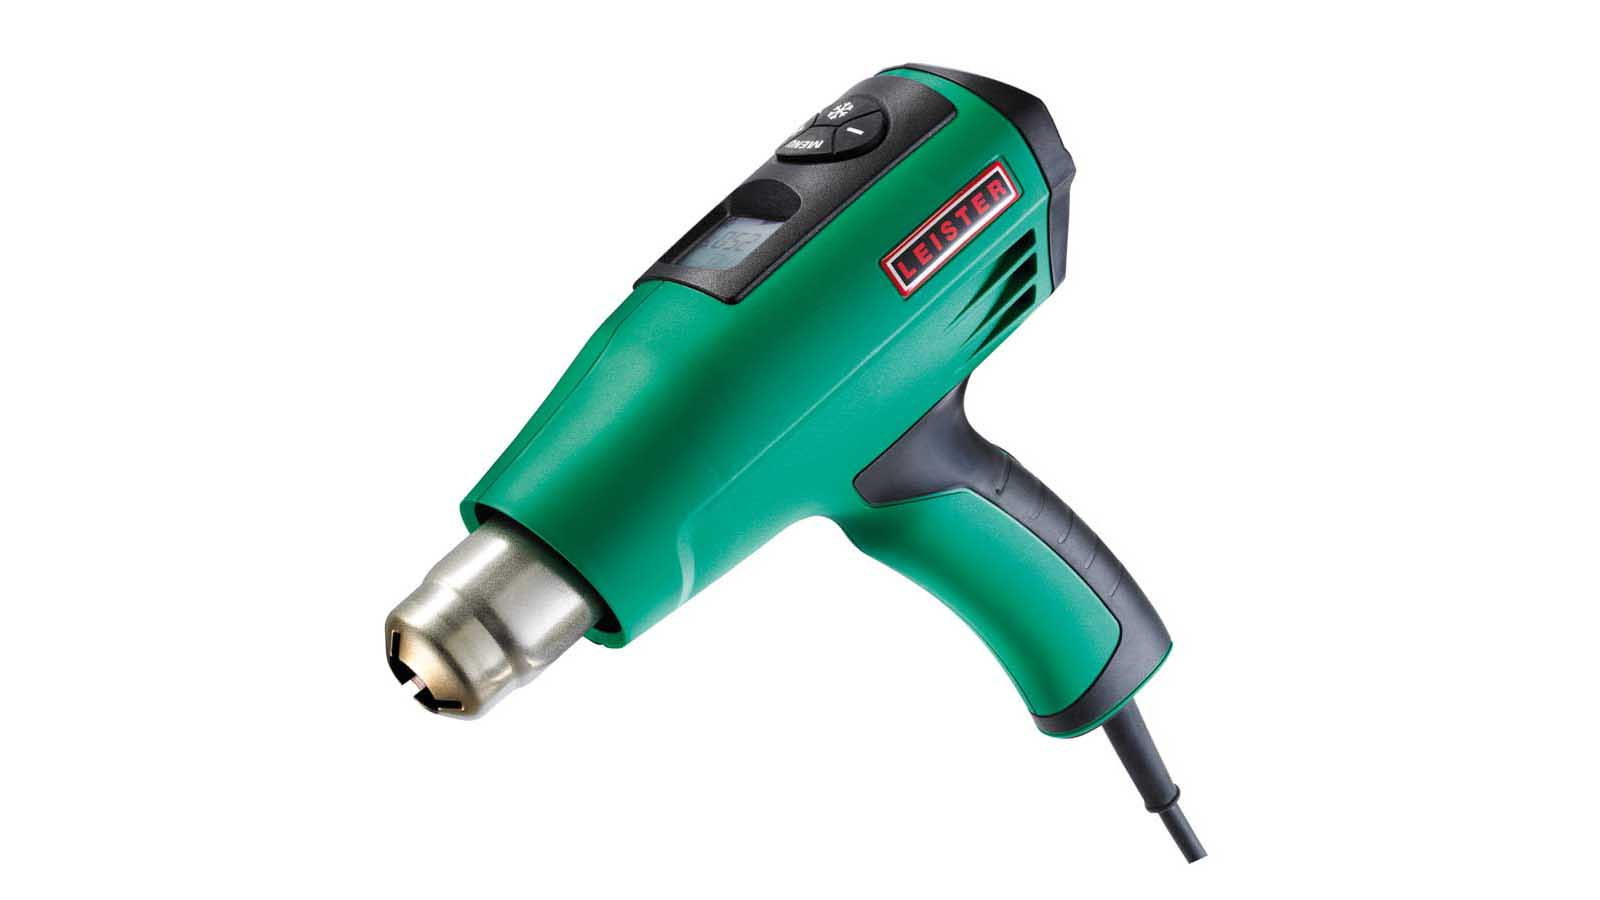 Hot-air tool SONORA S1